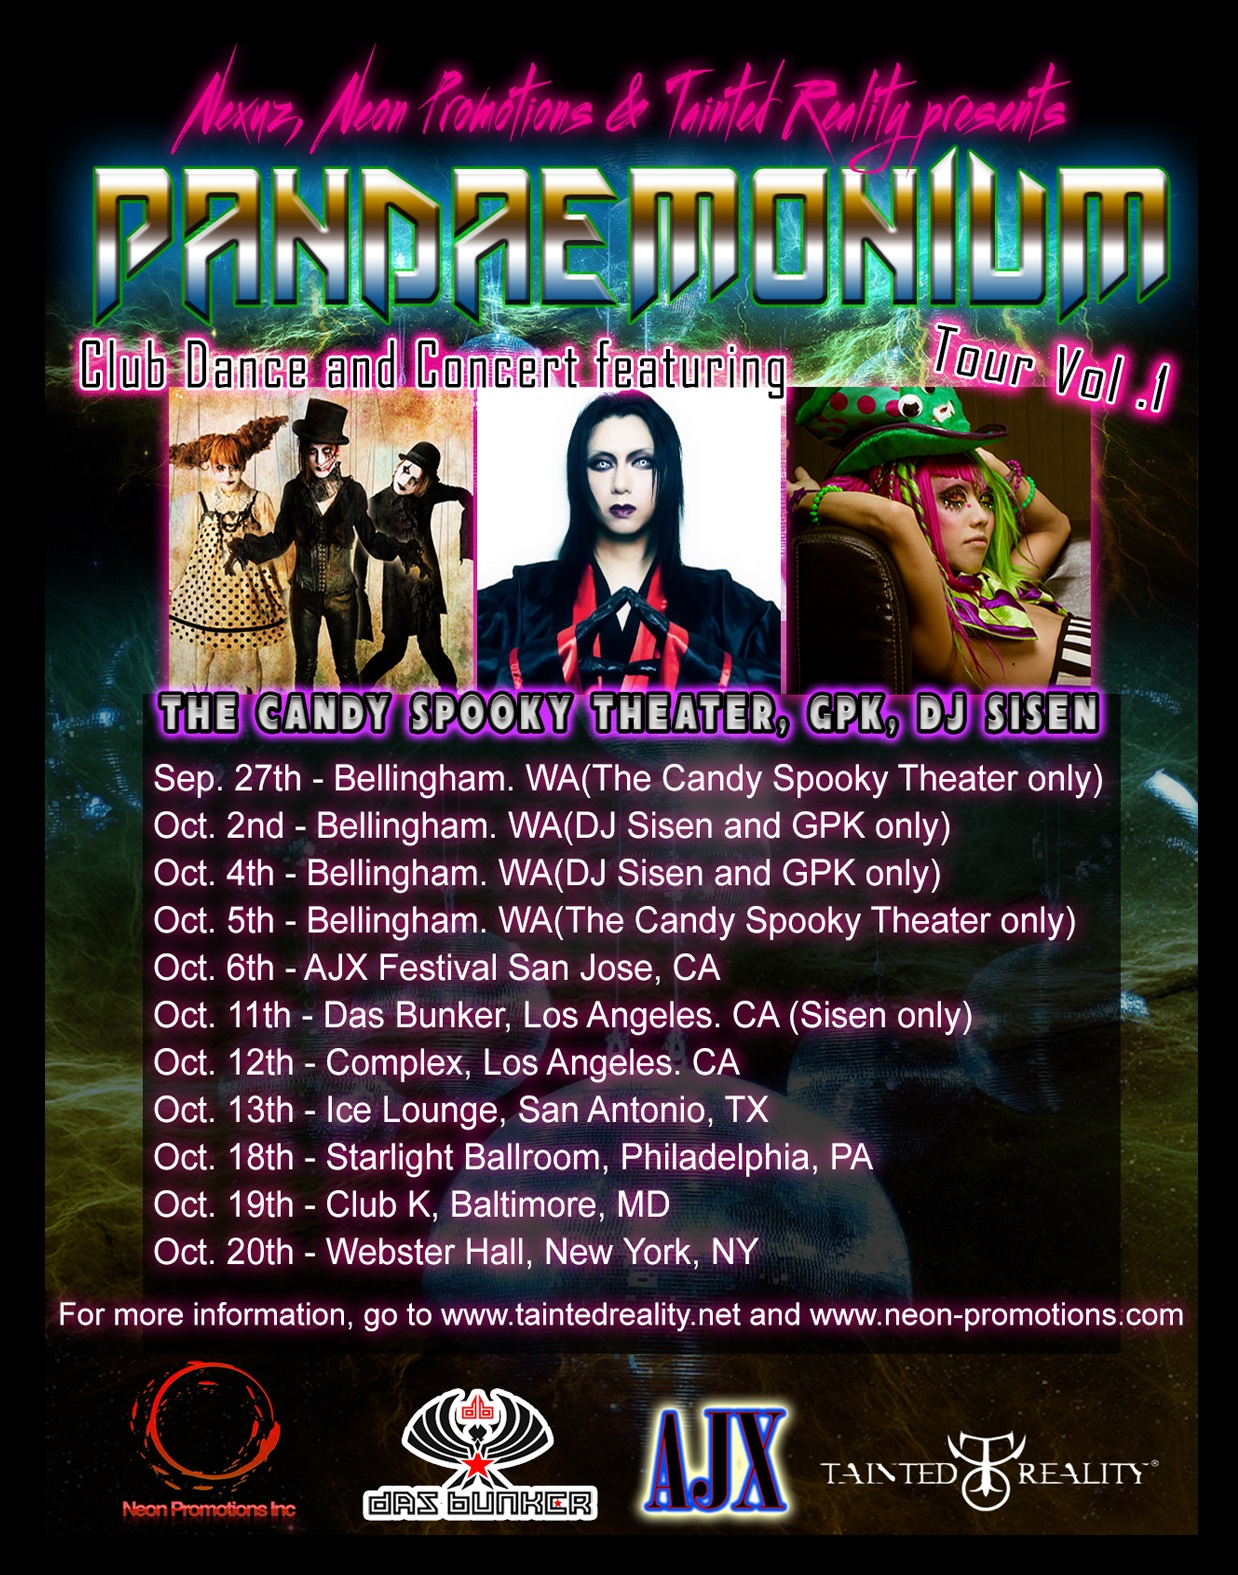 JRock247-Tainted-Reality-Pandemonium- Vol-1-Flyer